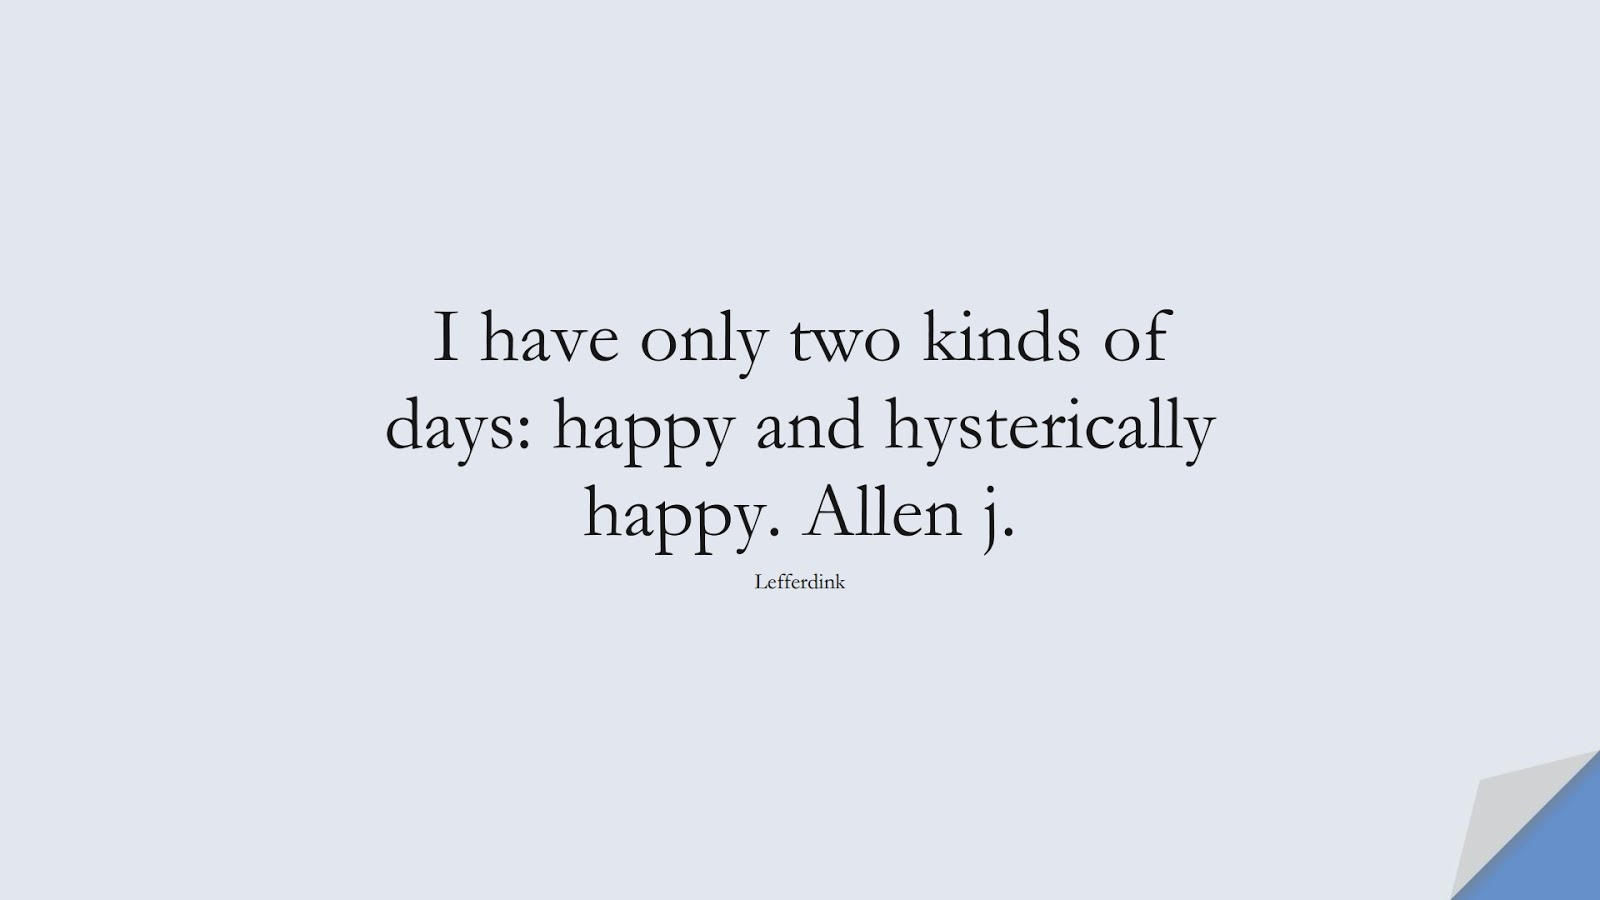 I have only two kinds of days: happy and hysterically happy. Allen j. (Lefferdink);  #HappinessQuotes